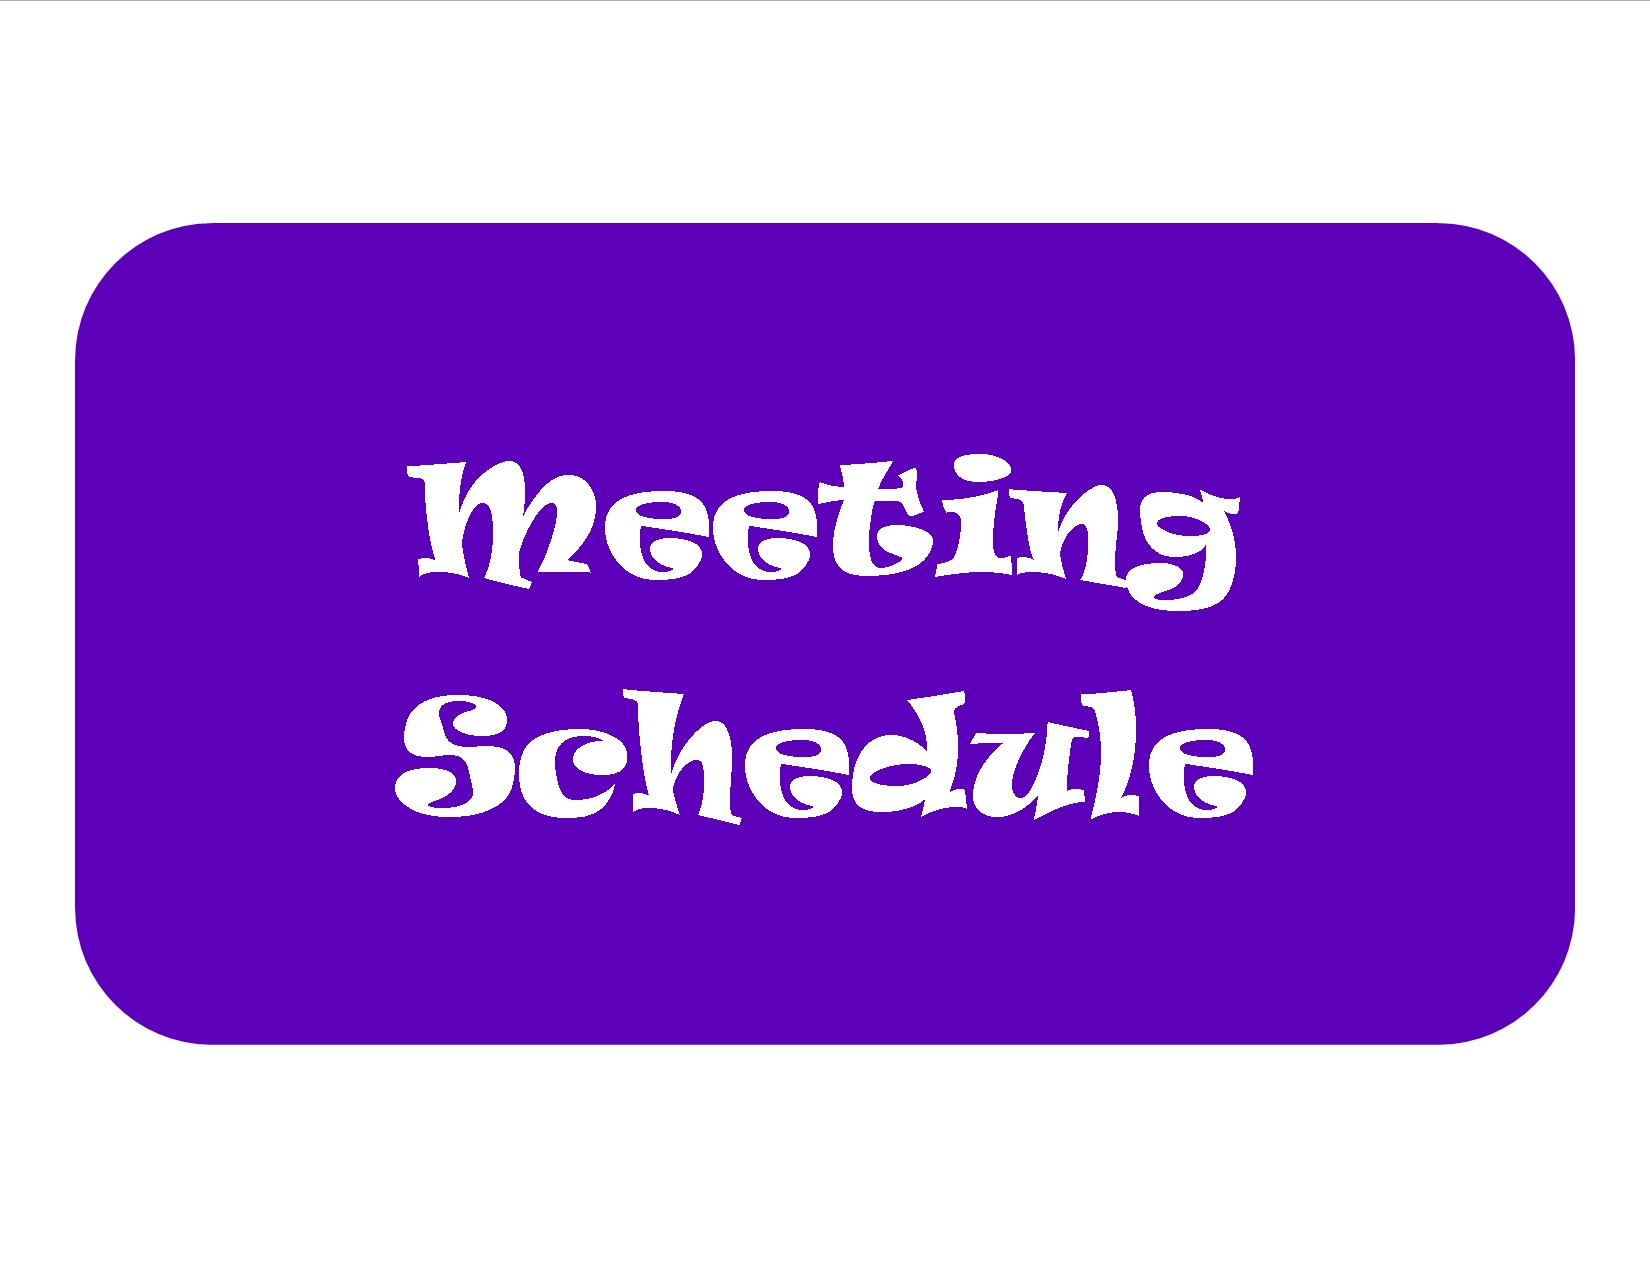 Meeting Schedule Button